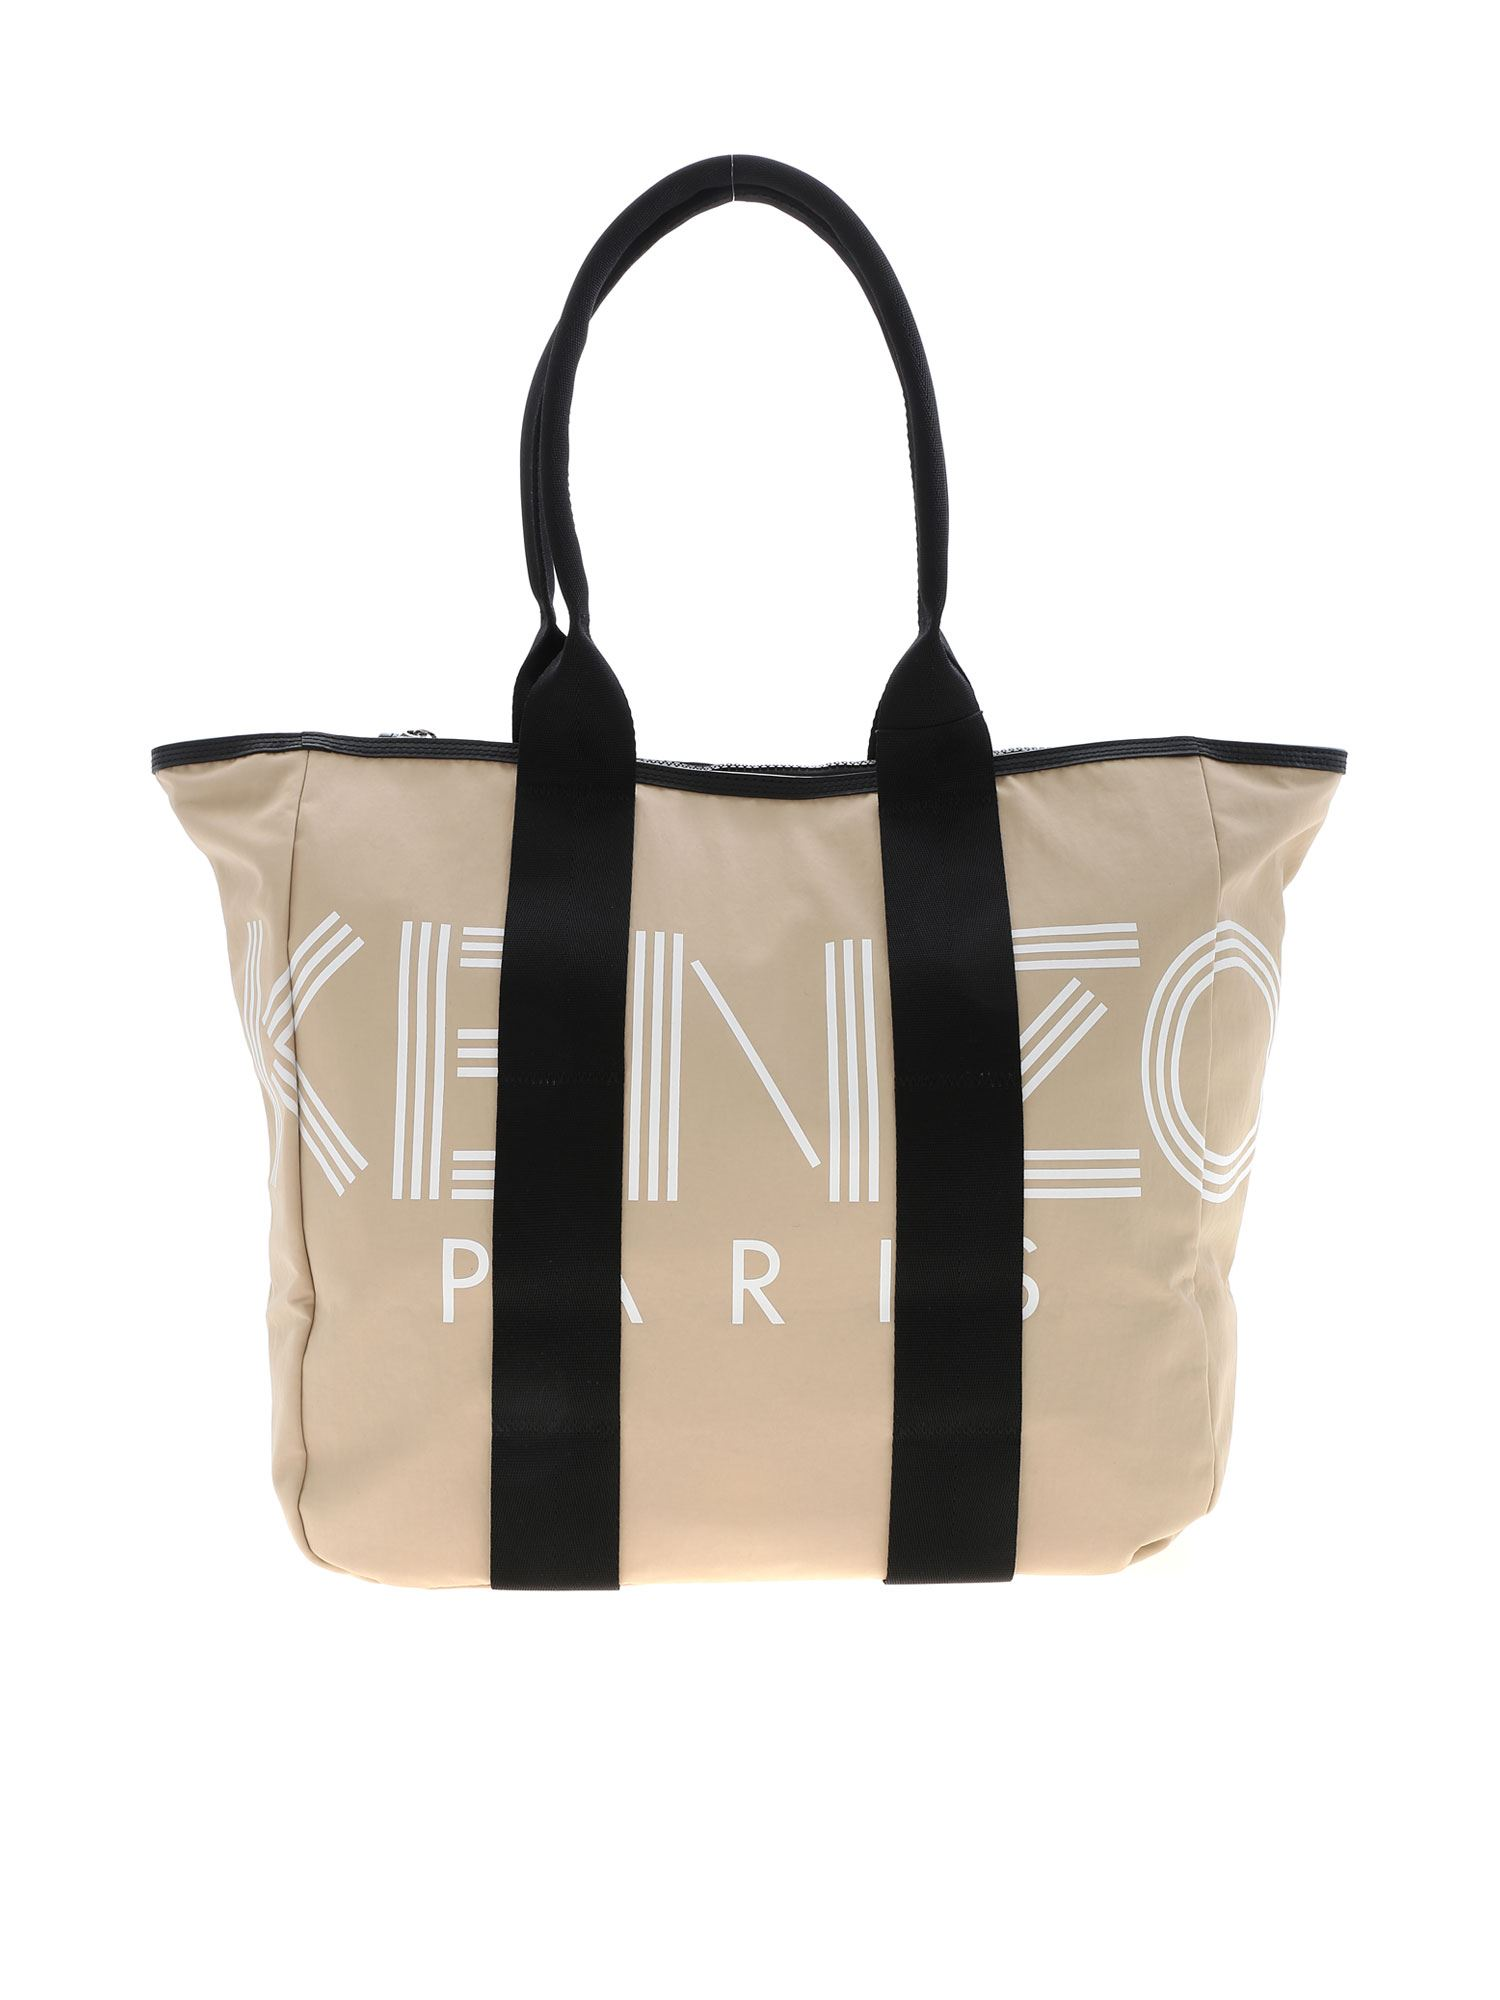 Kenzo Paris Tote Bag In Beige